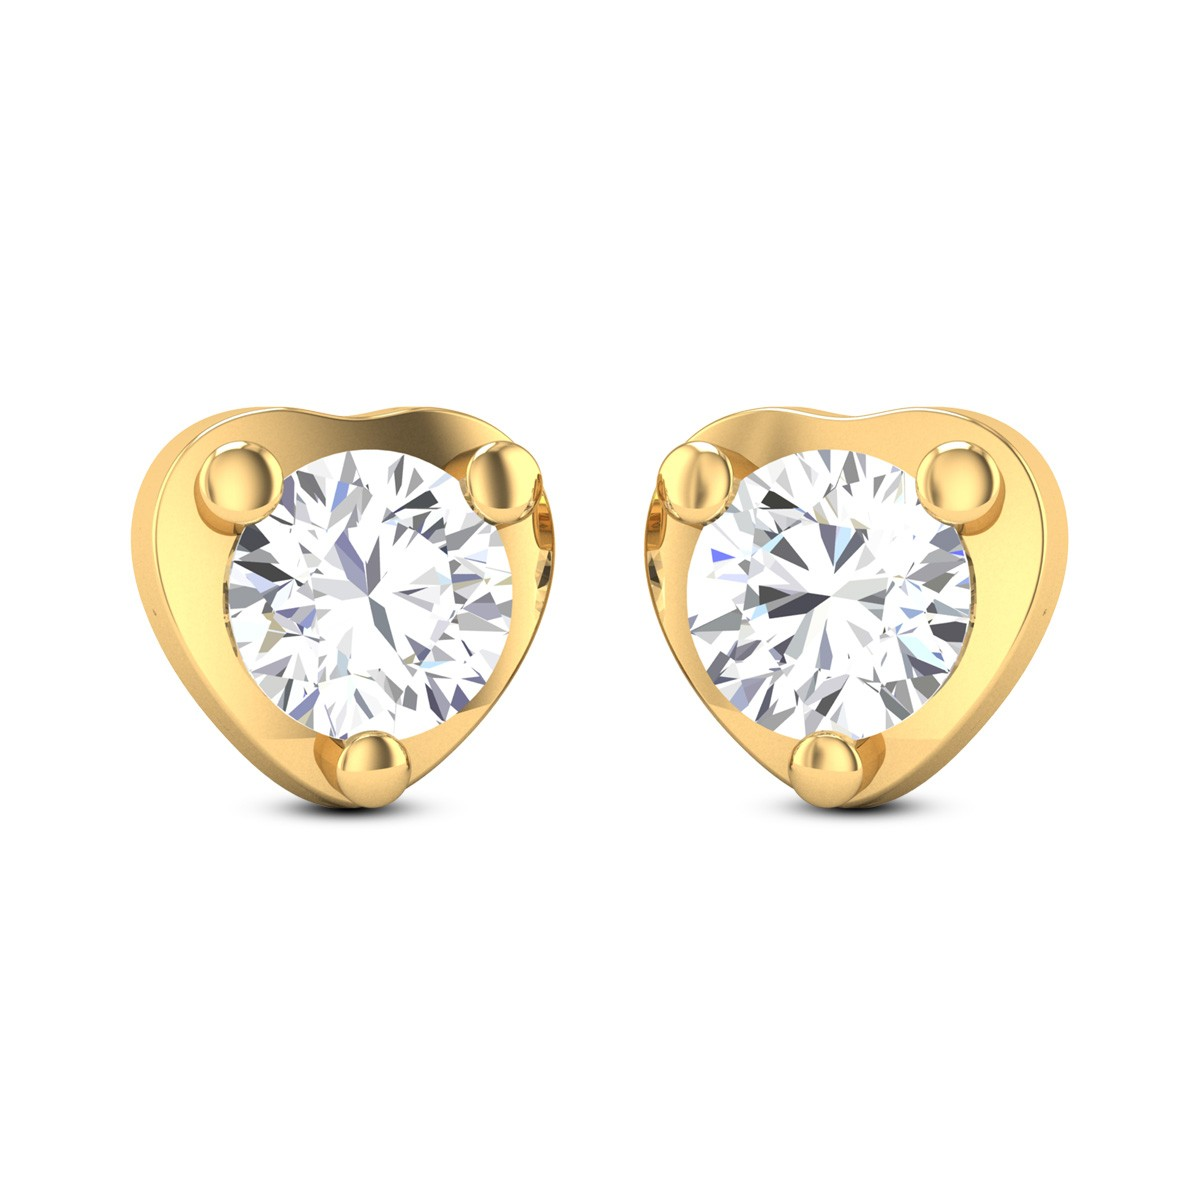 Amastris Diamond Earrings